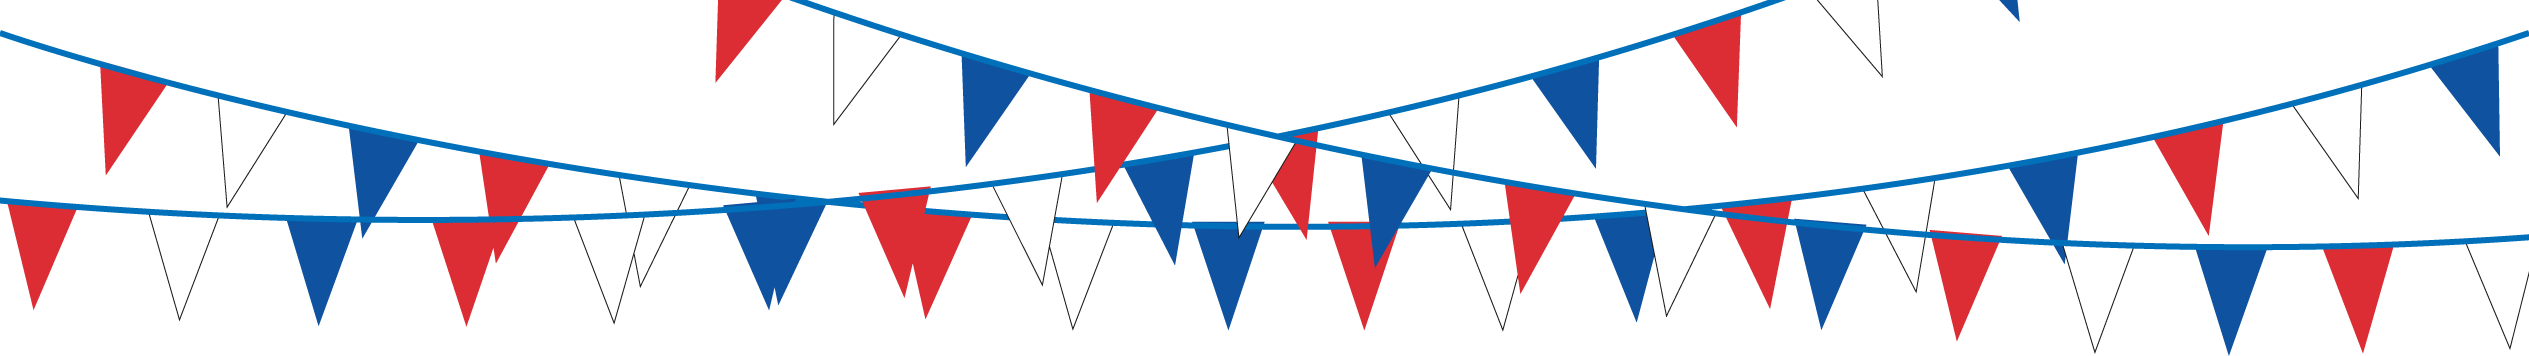 royal-wedding-bunting.png